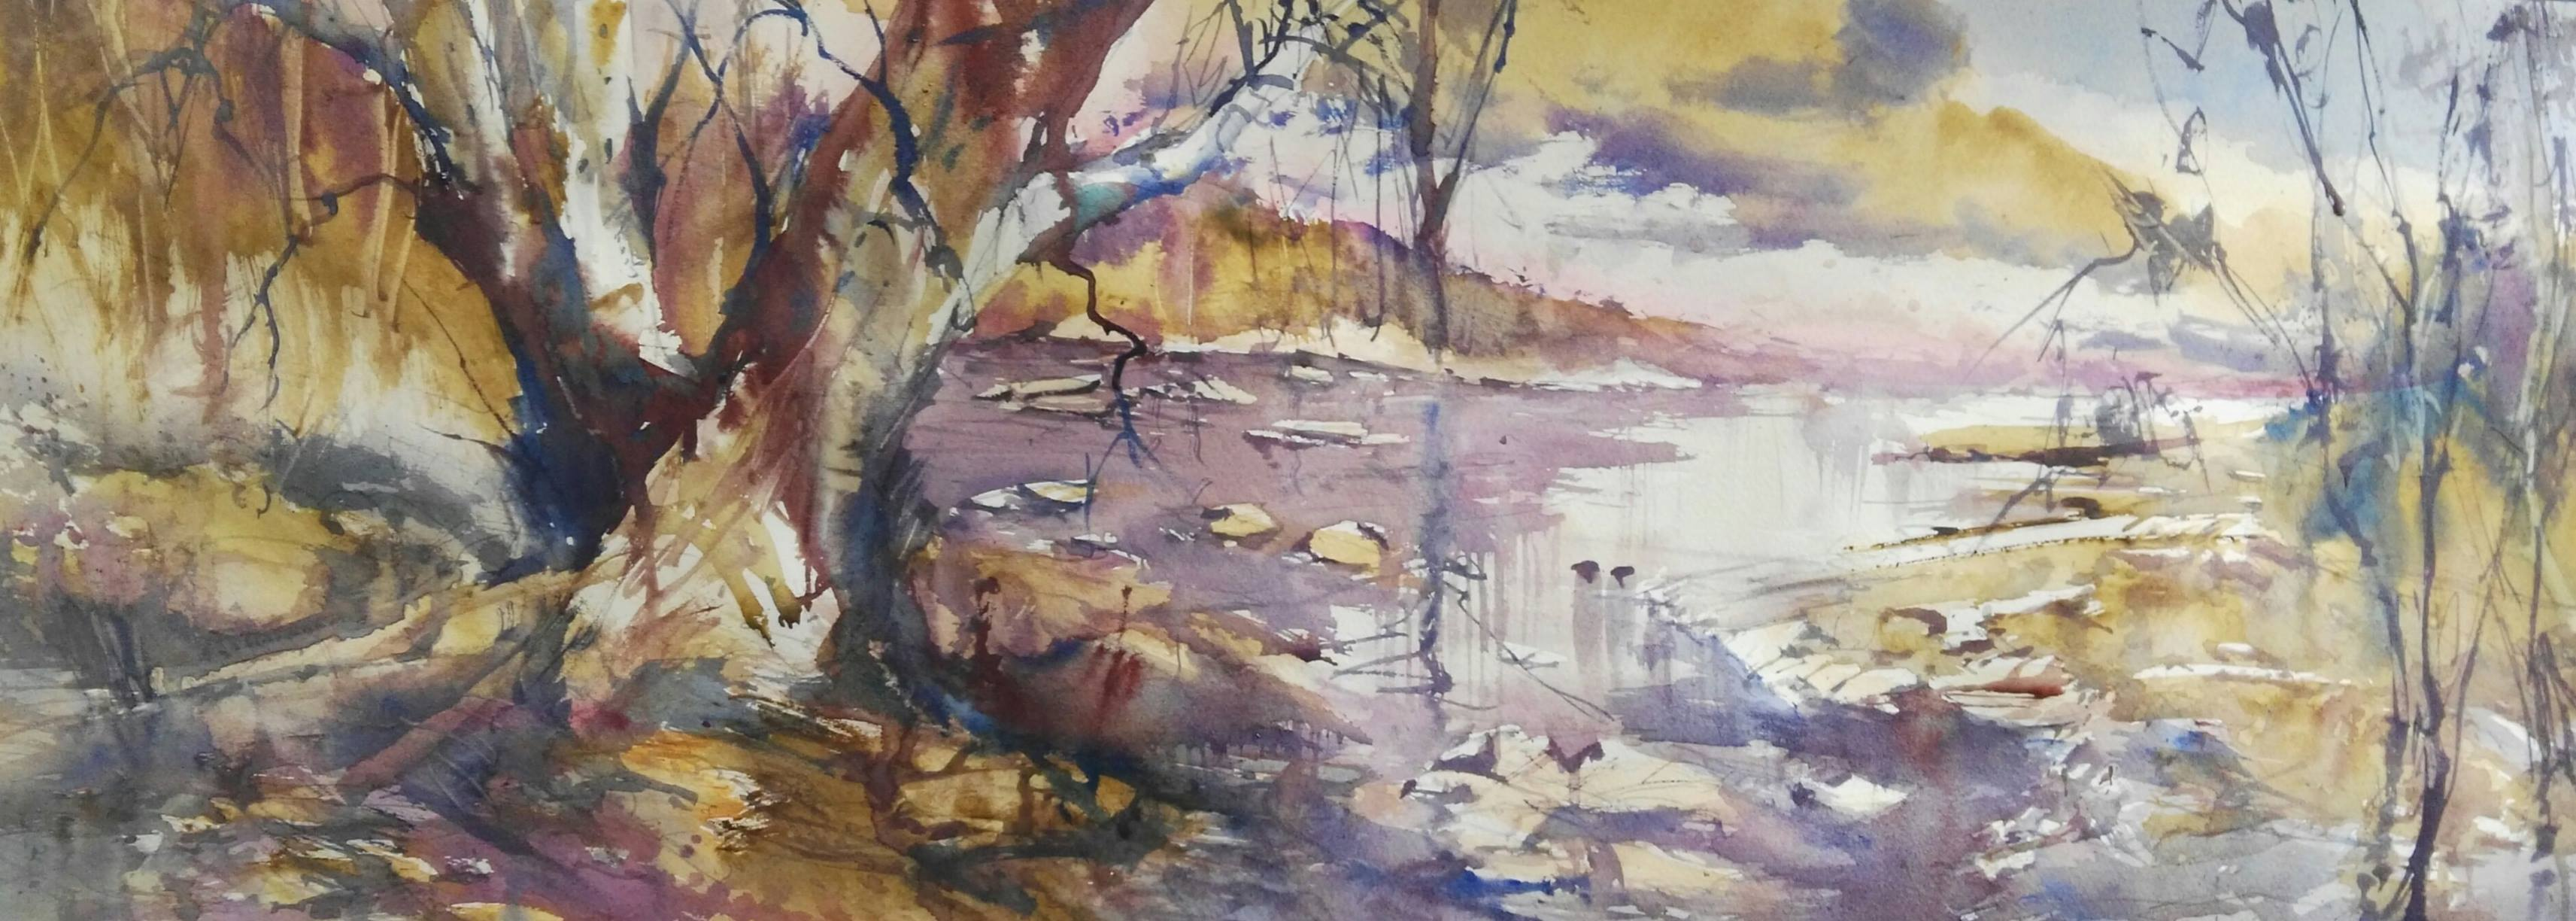 Learning to Paint Landscapes, with Alan Ramachandran a Full Day Workshop - Tuesday February 26th 10am -4pm  $100.00